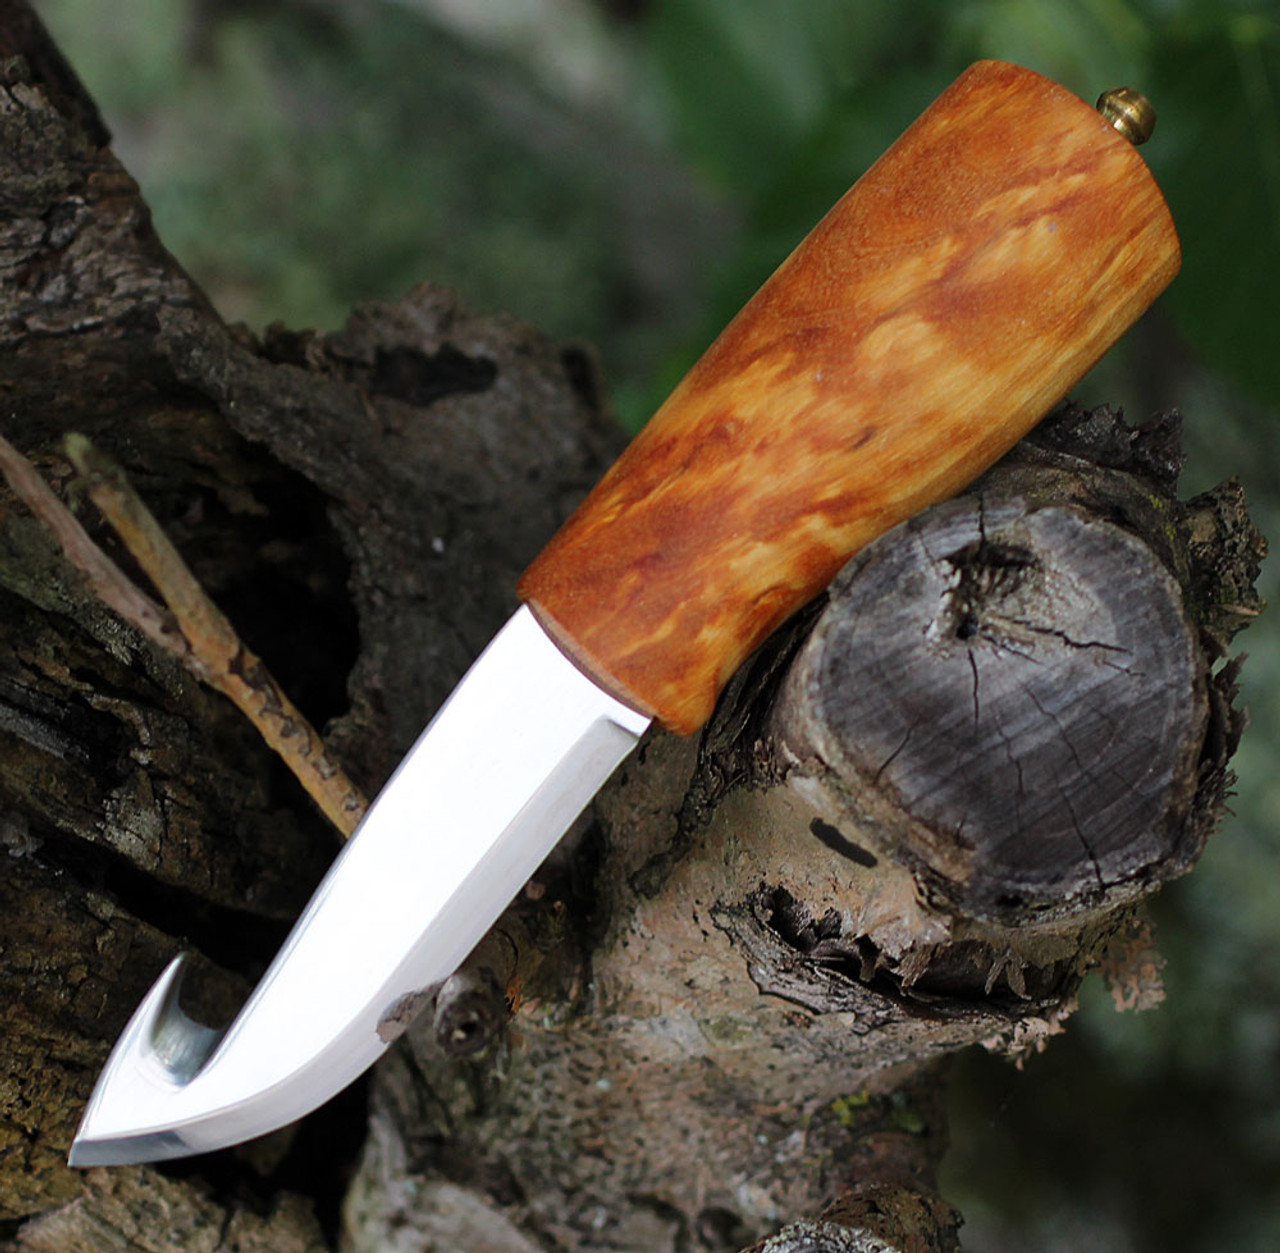 Helle No. 53 Veidemann Specialty Knife, Triple Laminated SS, Curly Birch